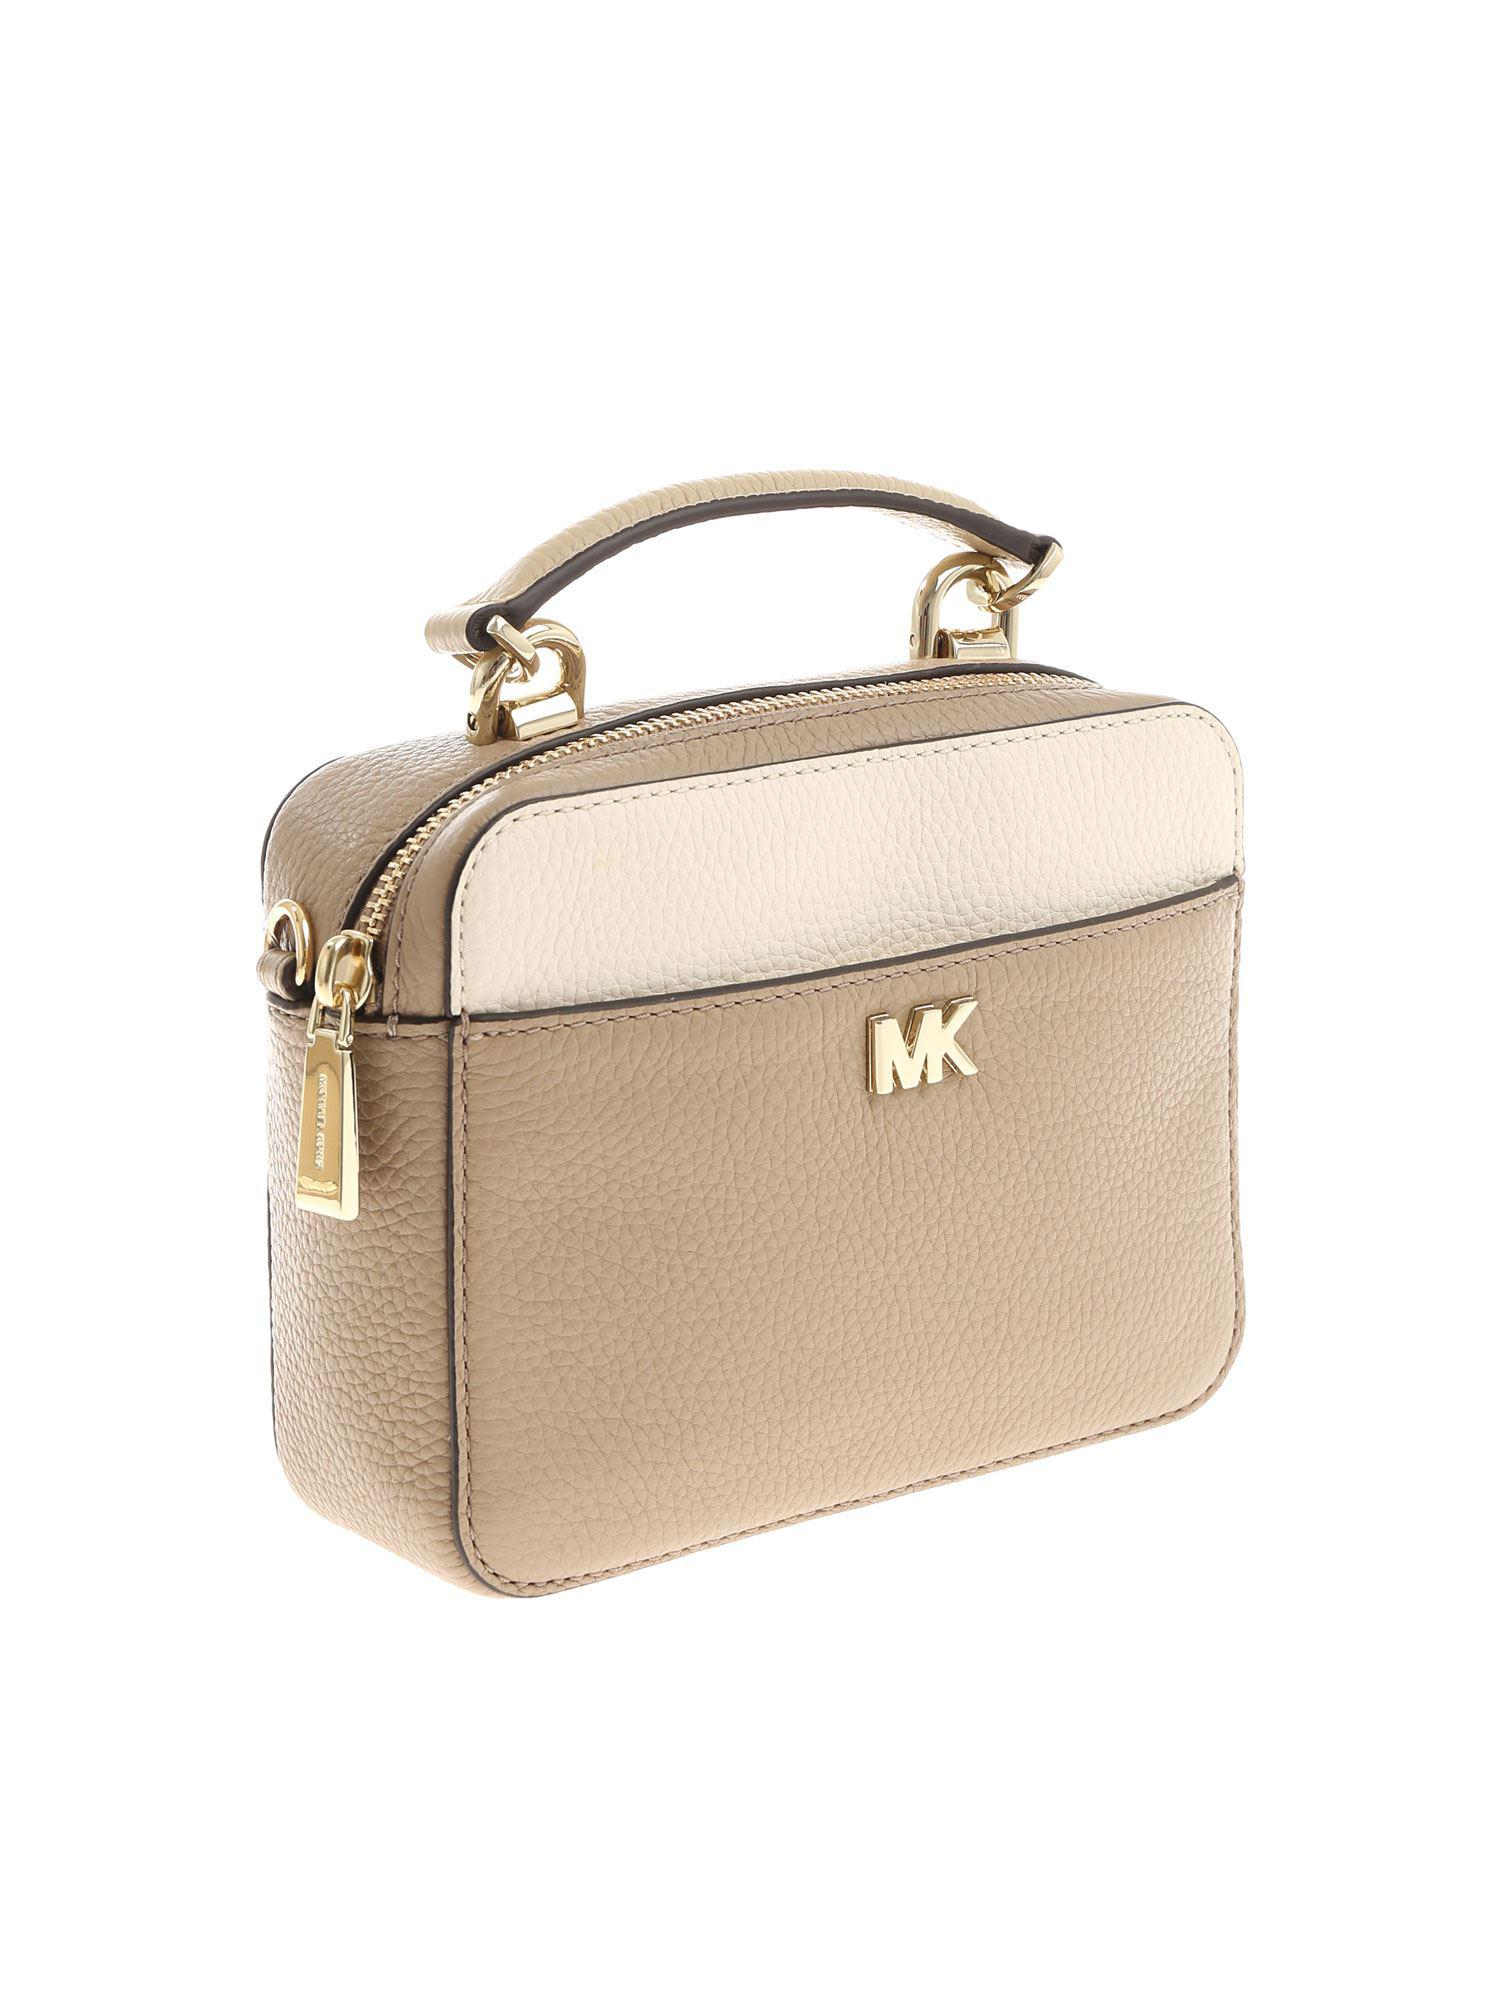 Michael Kors Multicolor Taupe Crossbody Bag Lyst View Fullscreen